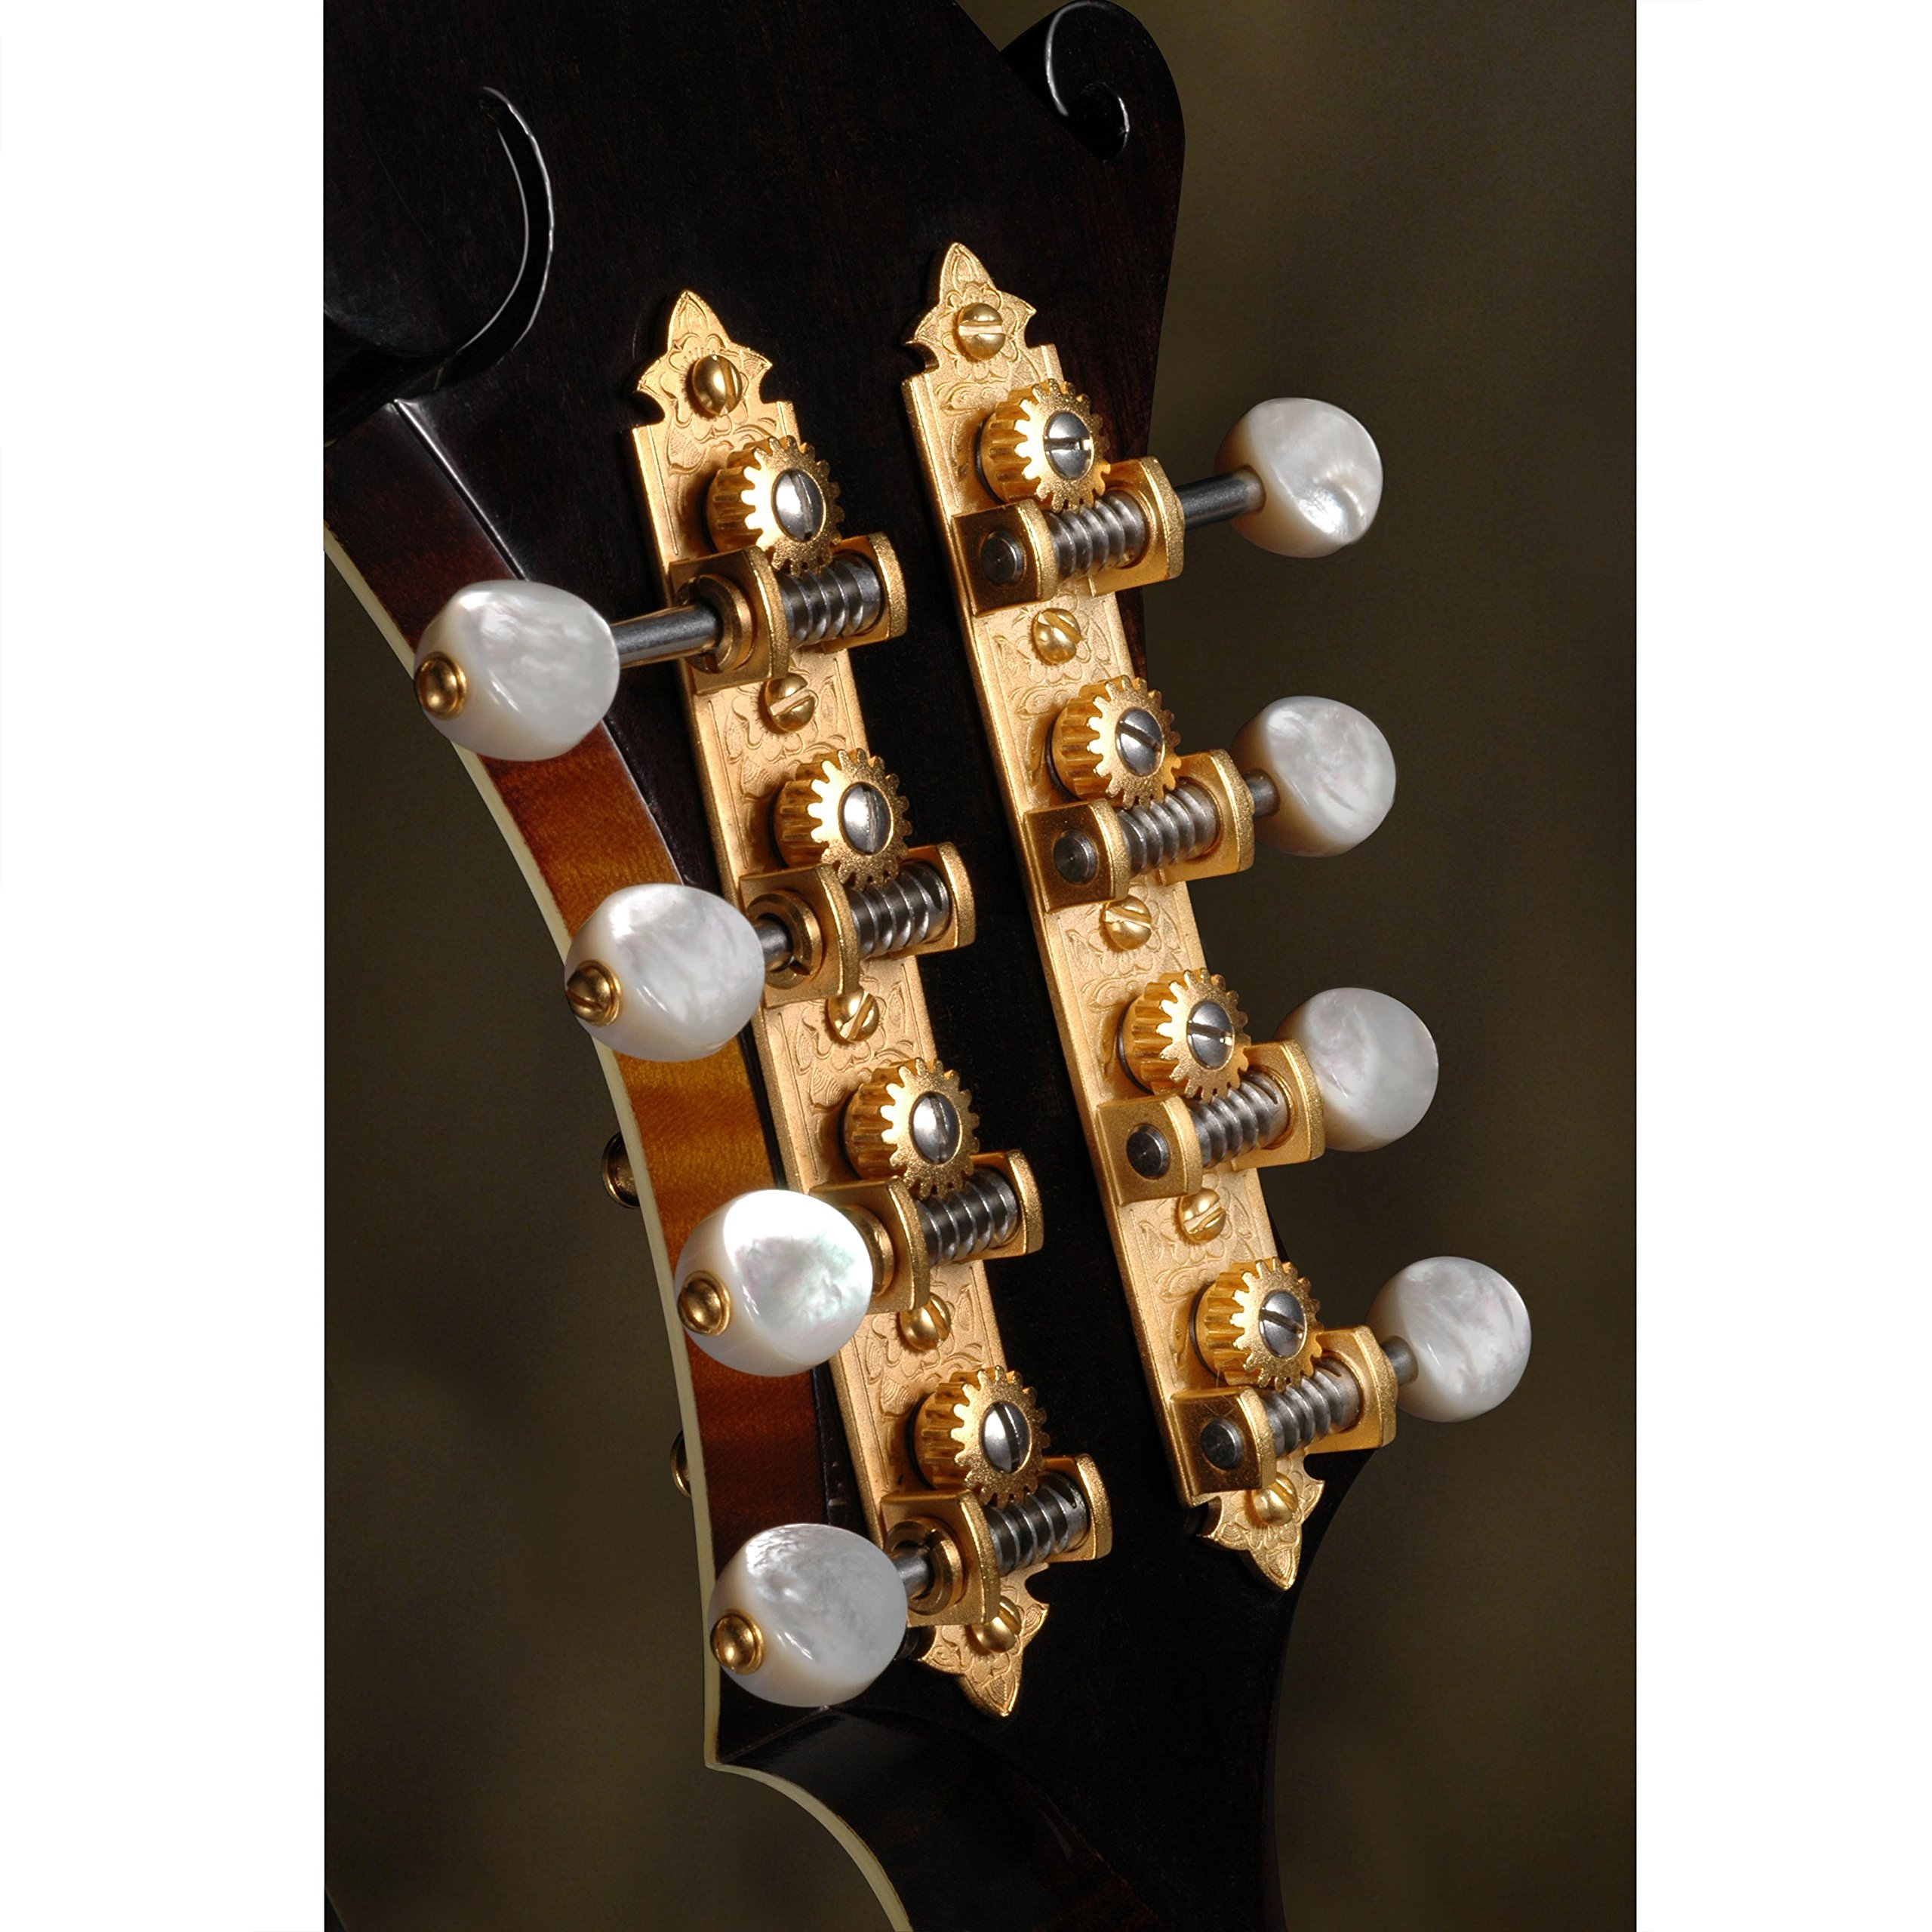 Waverly F-style Mandolin Tuning Machines with Pearl Knobs, Satin Gold